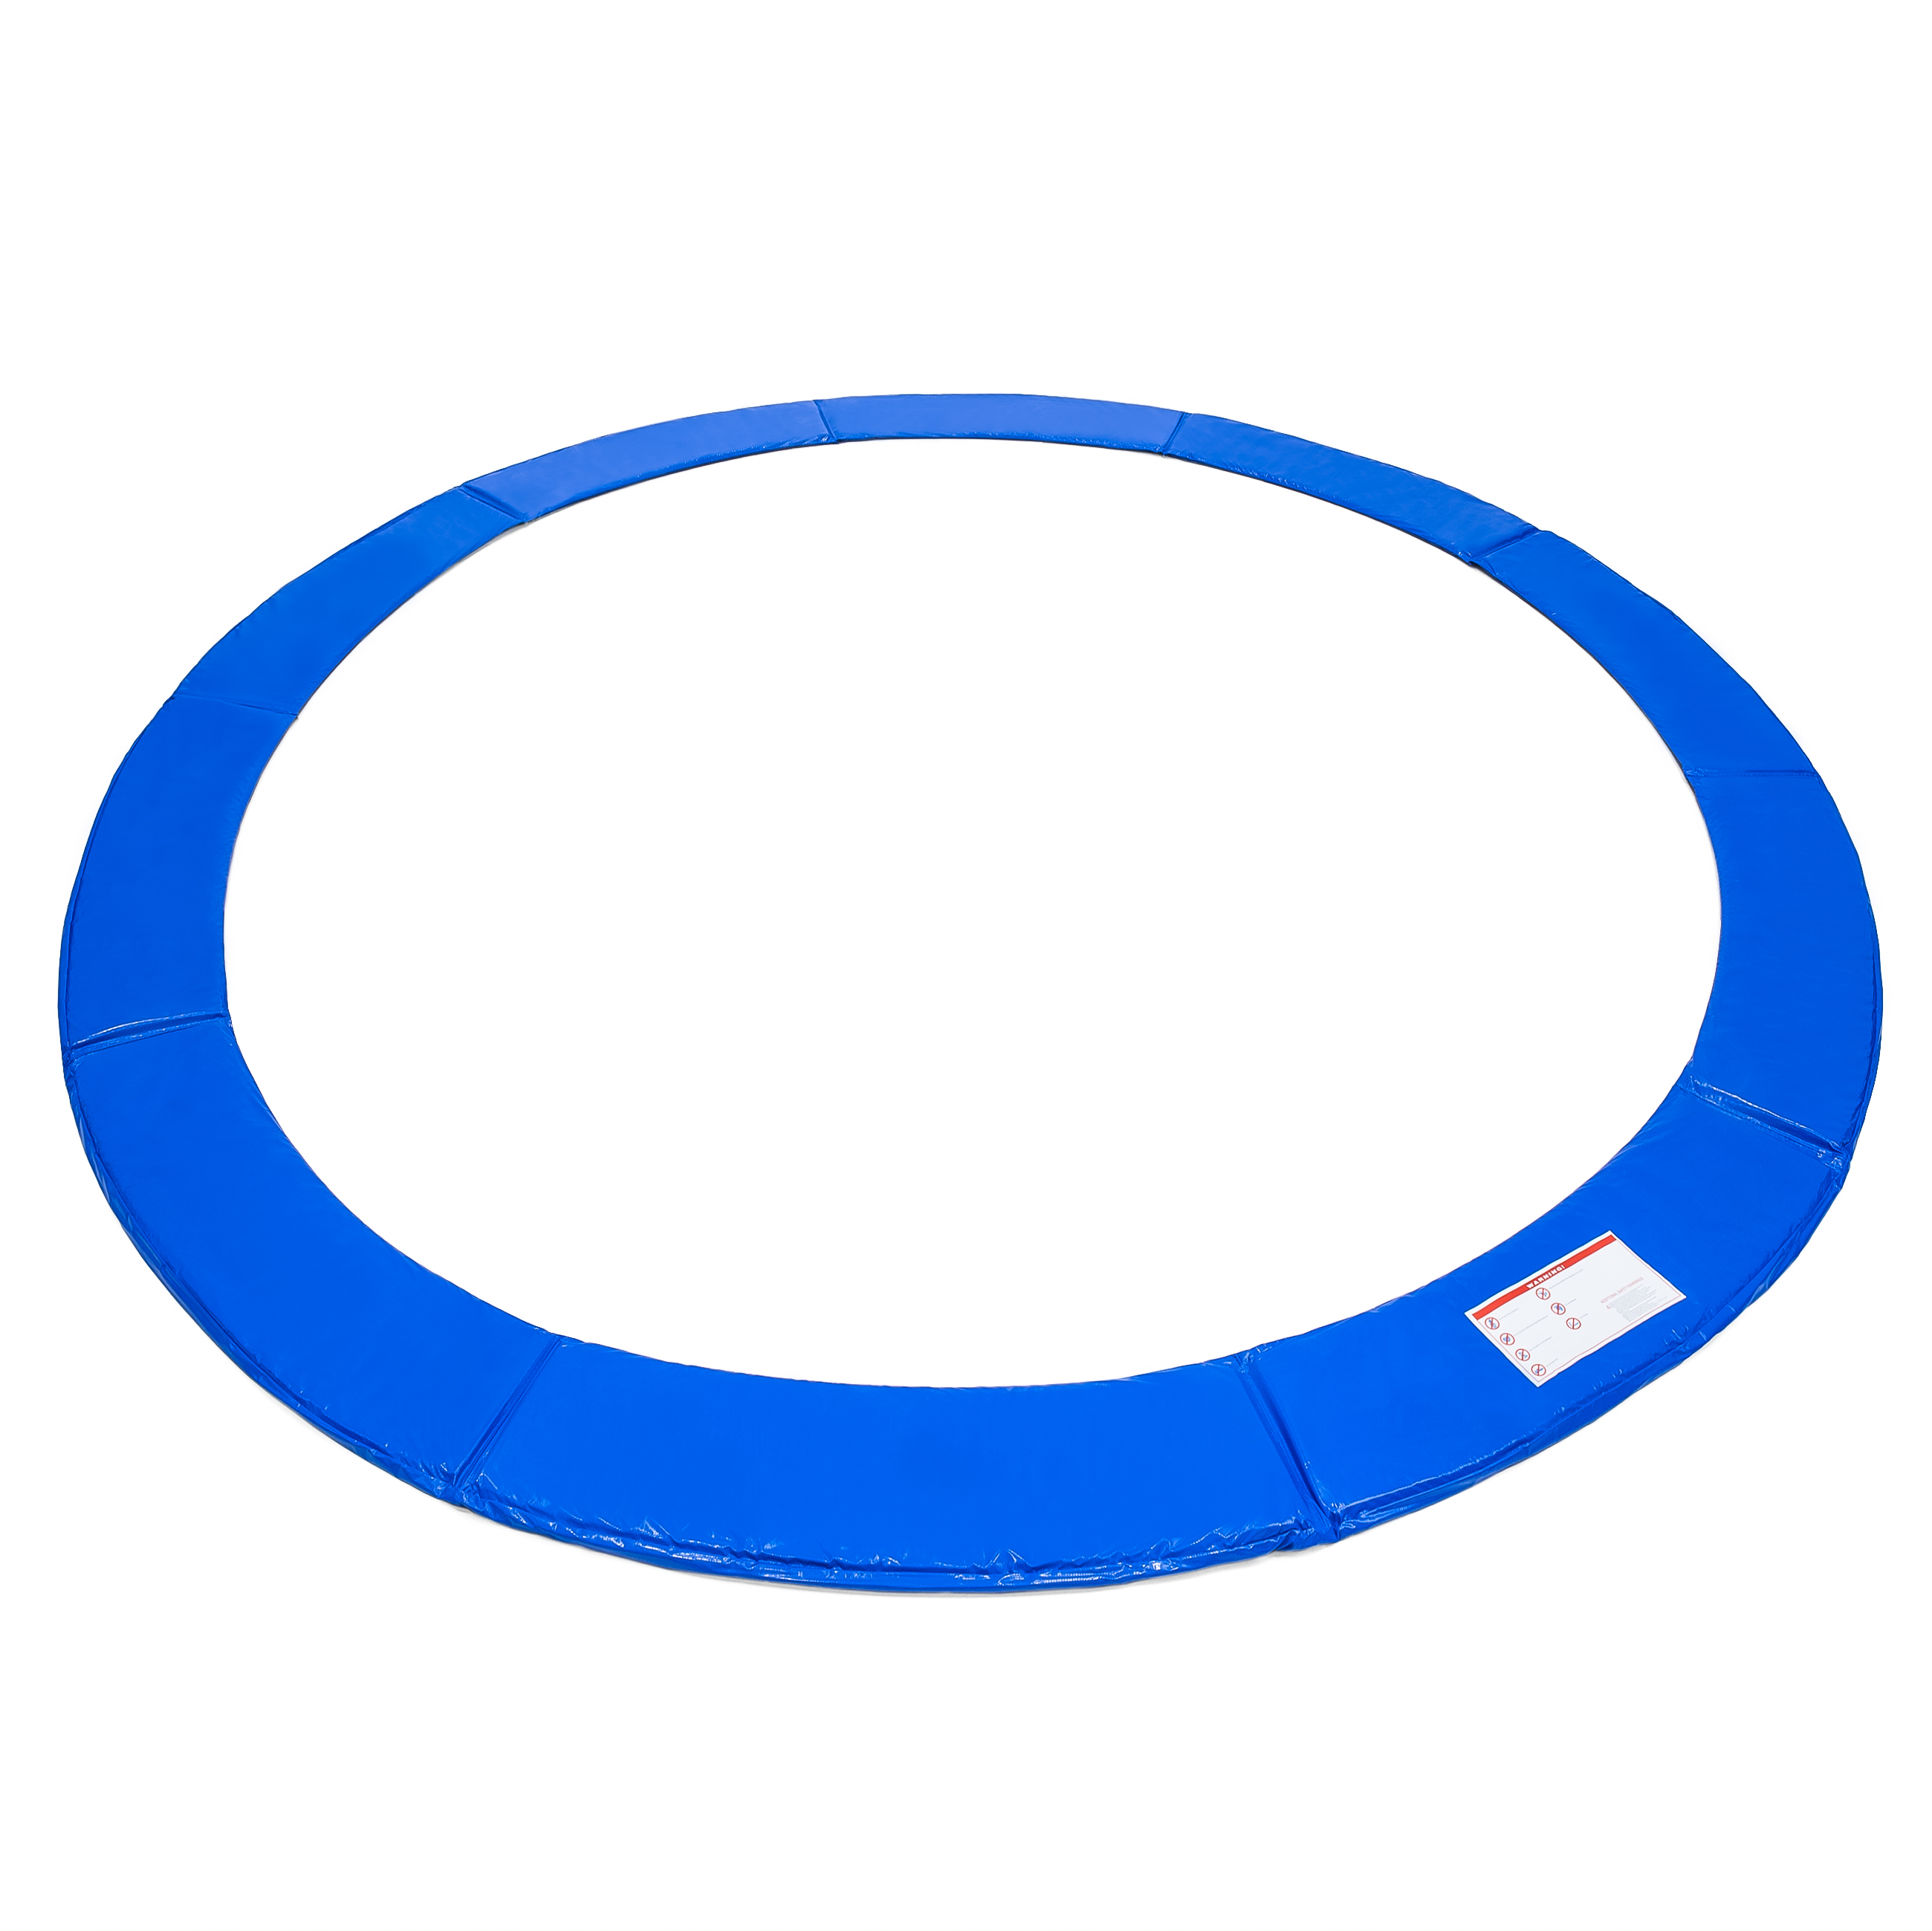 Best Choice Products 12-Foot Replacement Trampoline Safety Pad Spring Cover, Blue